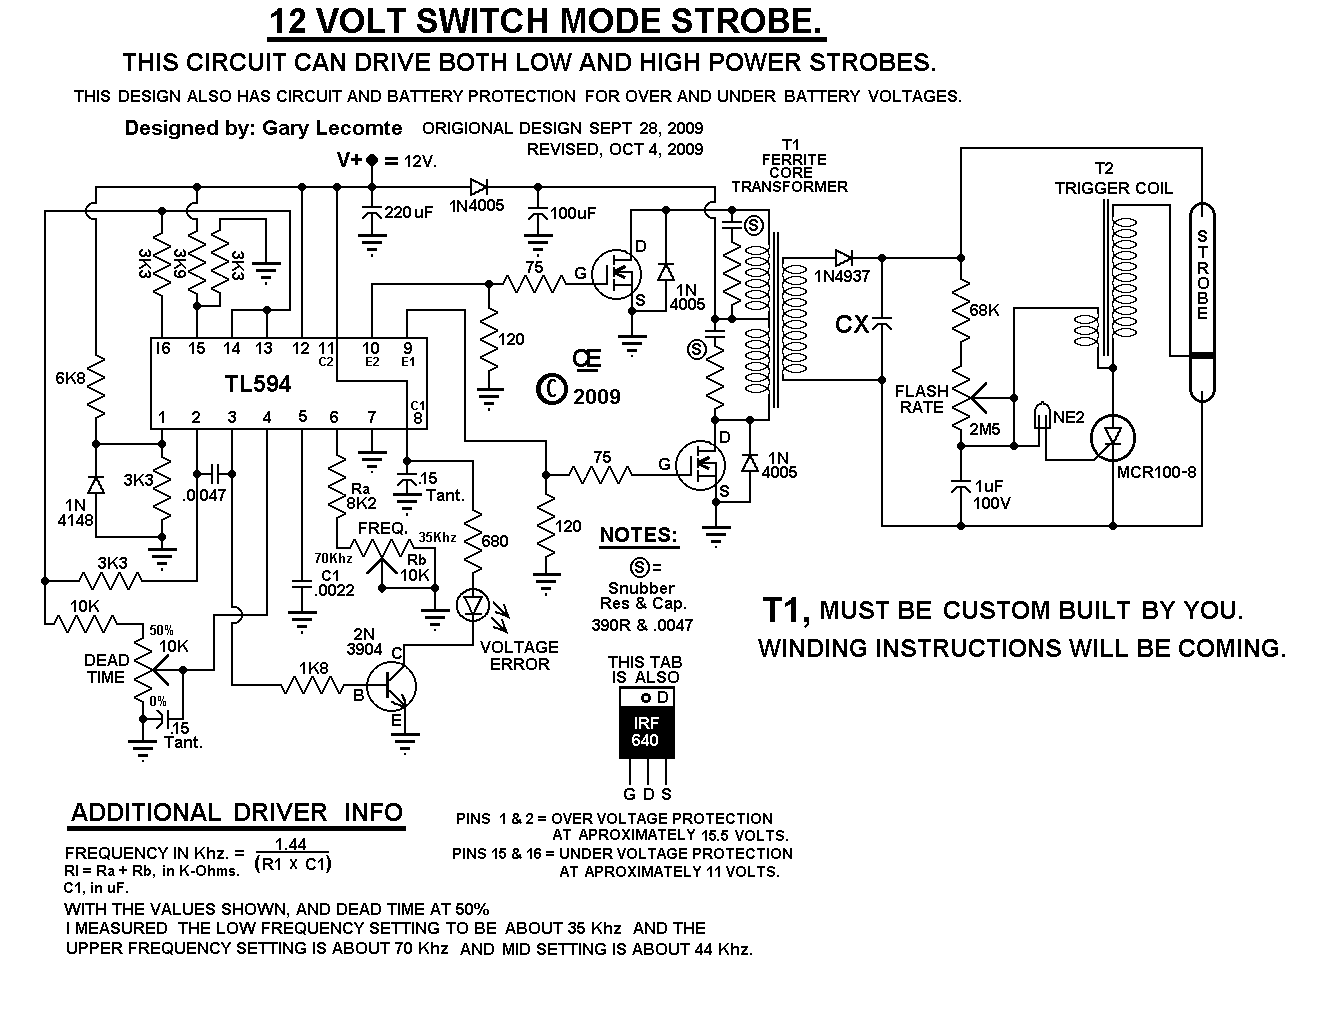 Strobe 2 sch a switching supply, 12 volt strobe strobe power supply wiring diagram at soozxer.org